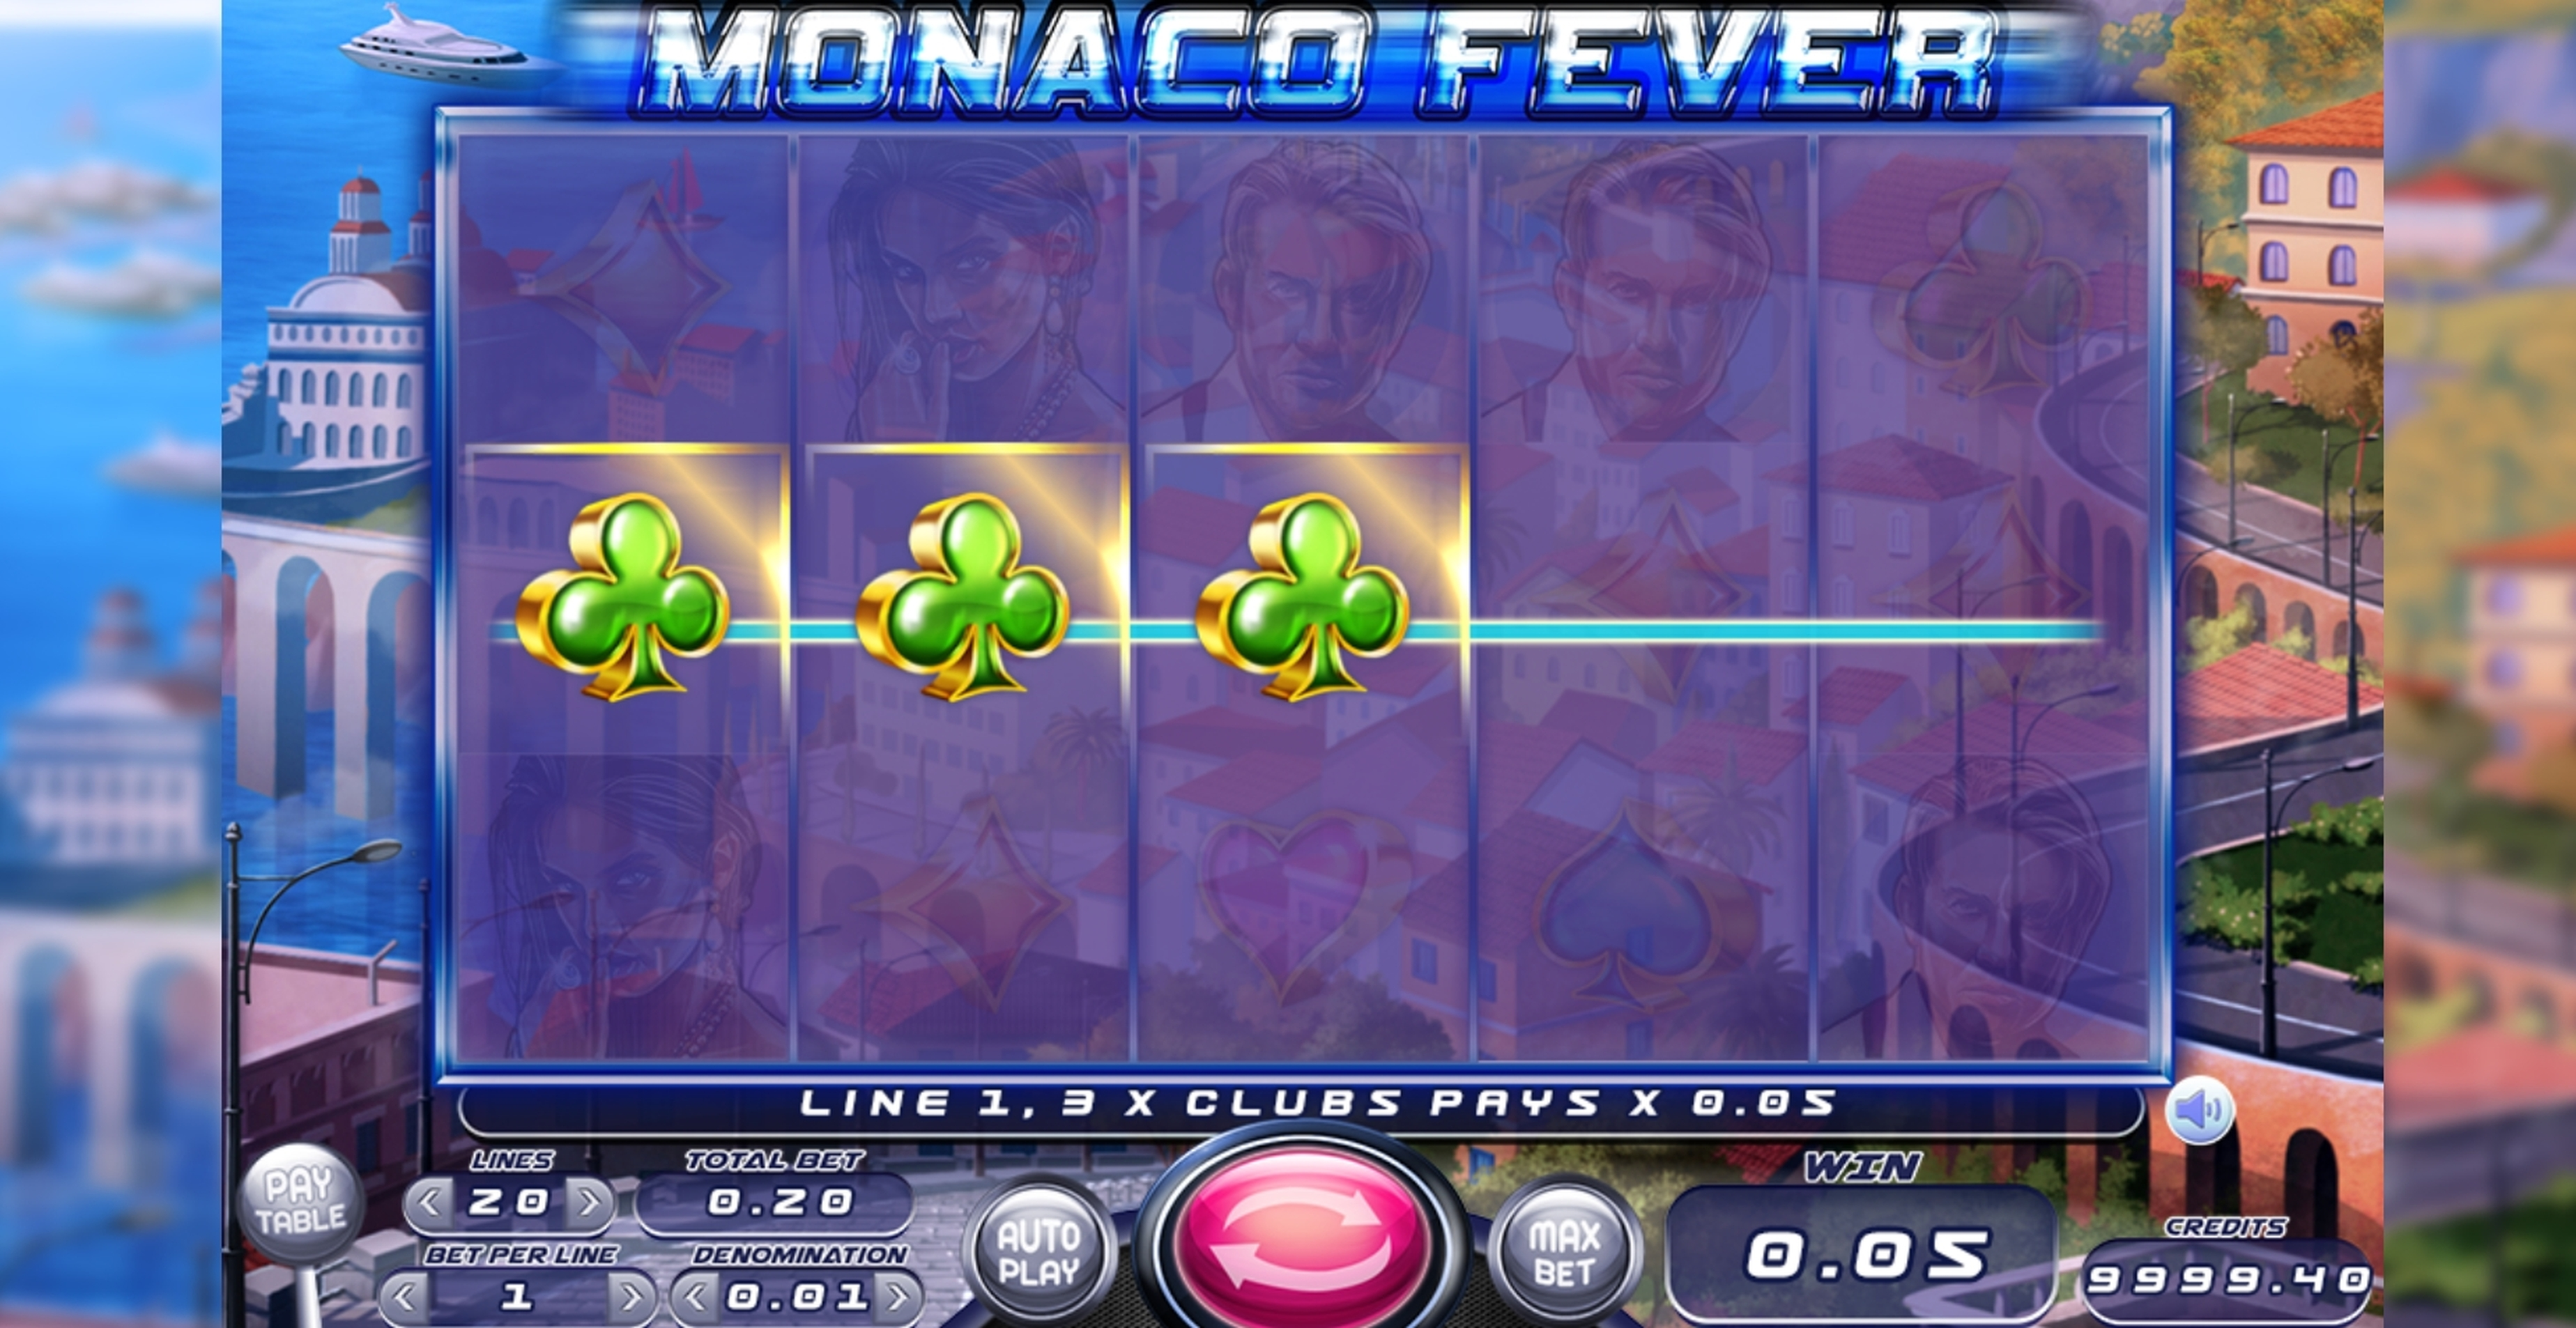 Win Money in Monaco Fever Free Slot Game by Felix Gaming